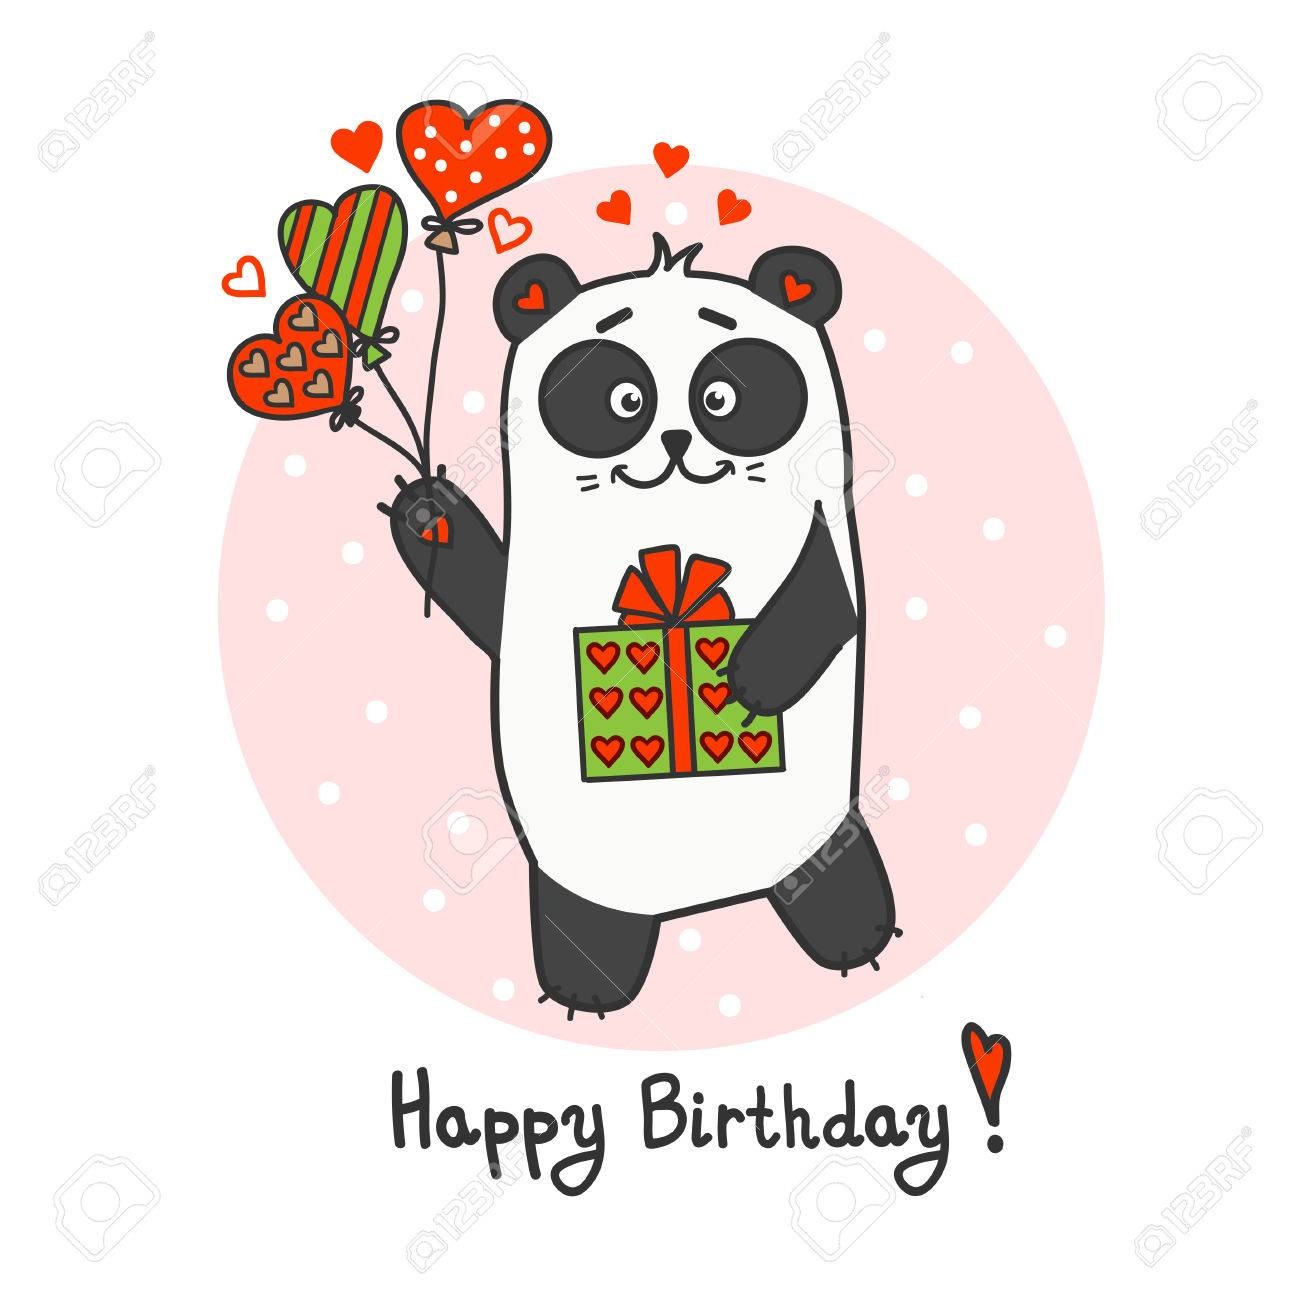 Happy Birthday Greeting Card With Cute Little Panda Royalty Free